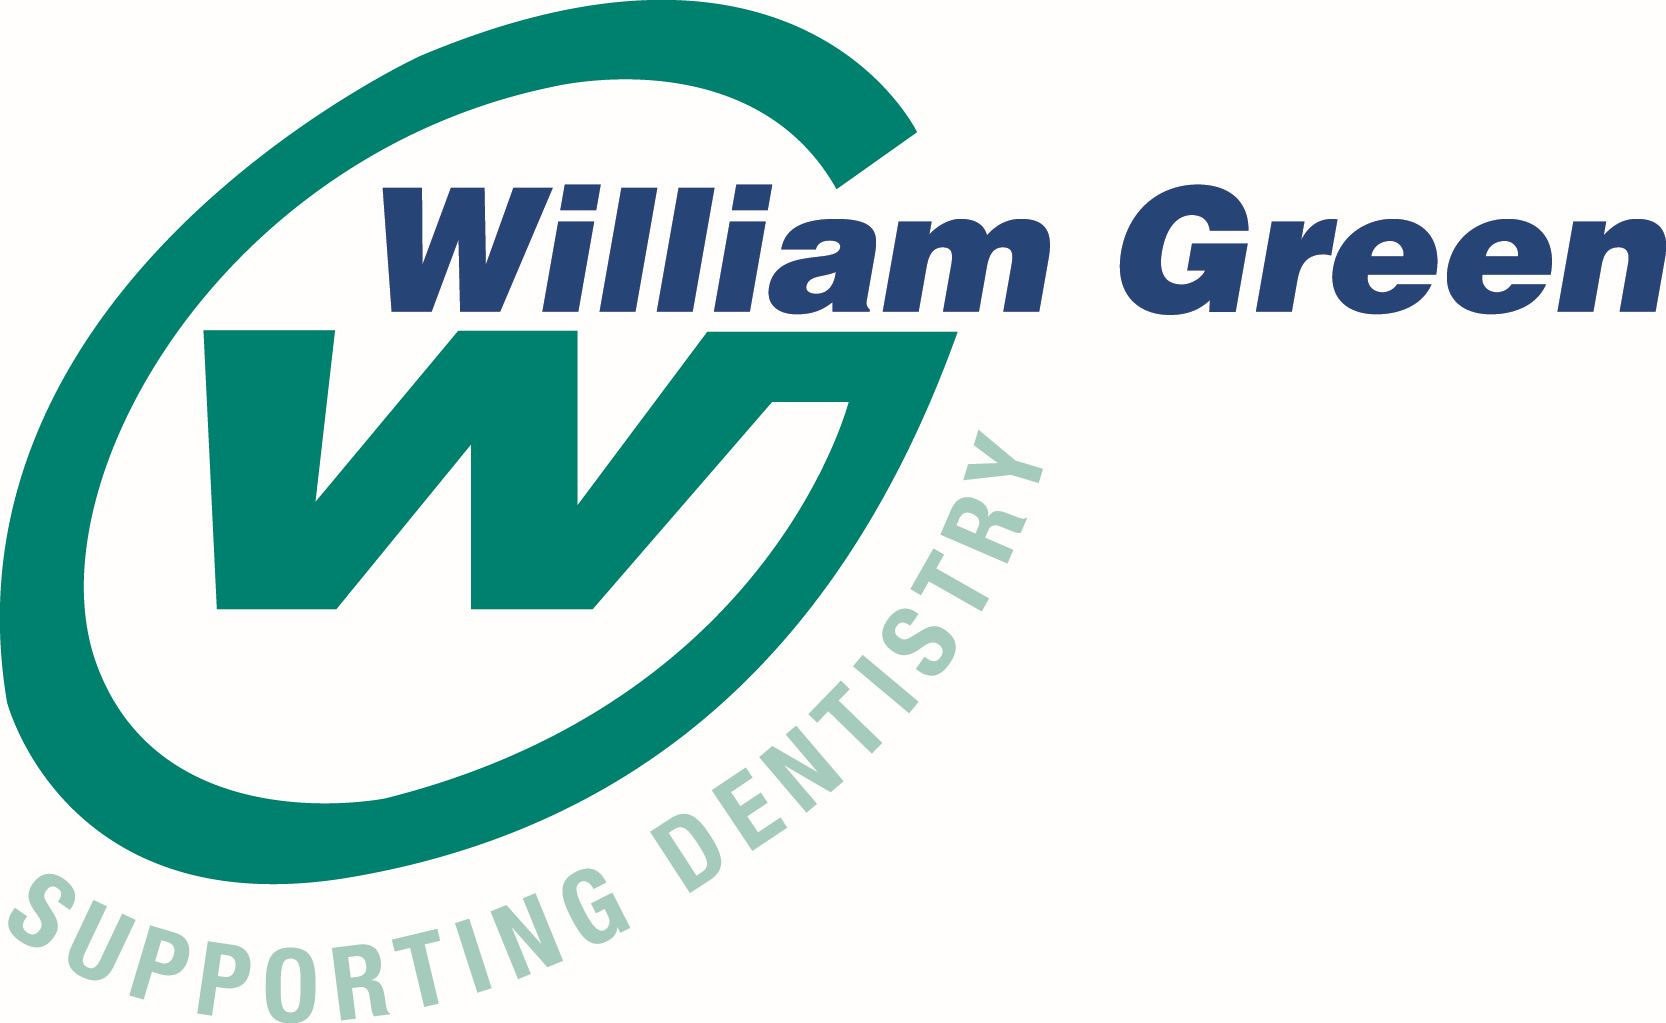 William Green logo